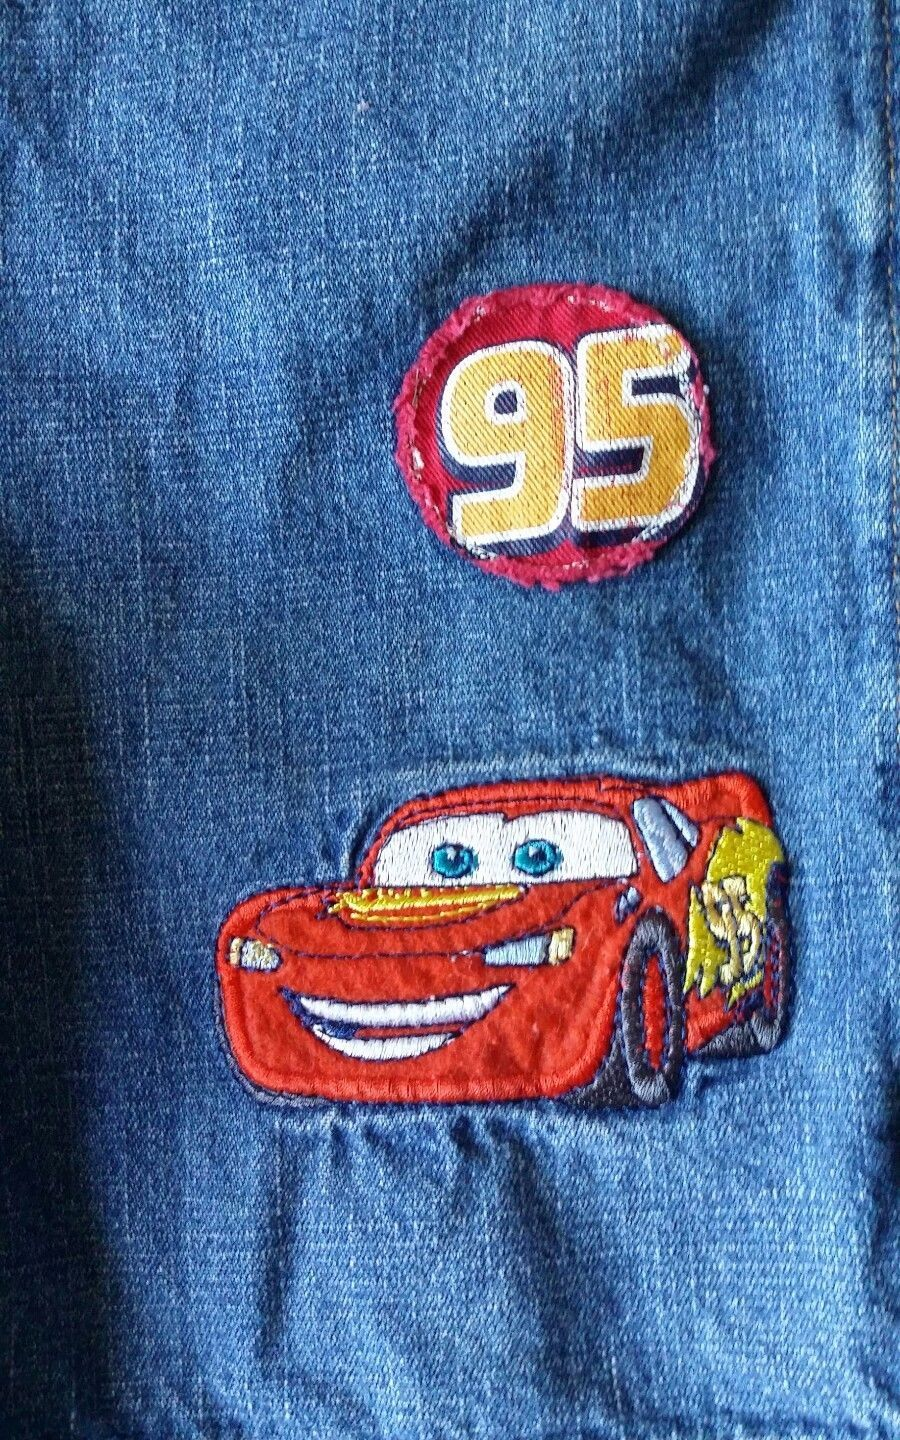 VTG Disney Pixar Cars 95 Lightening McQueen Denim Bibs Shorts 5T Overalls HTF image 3